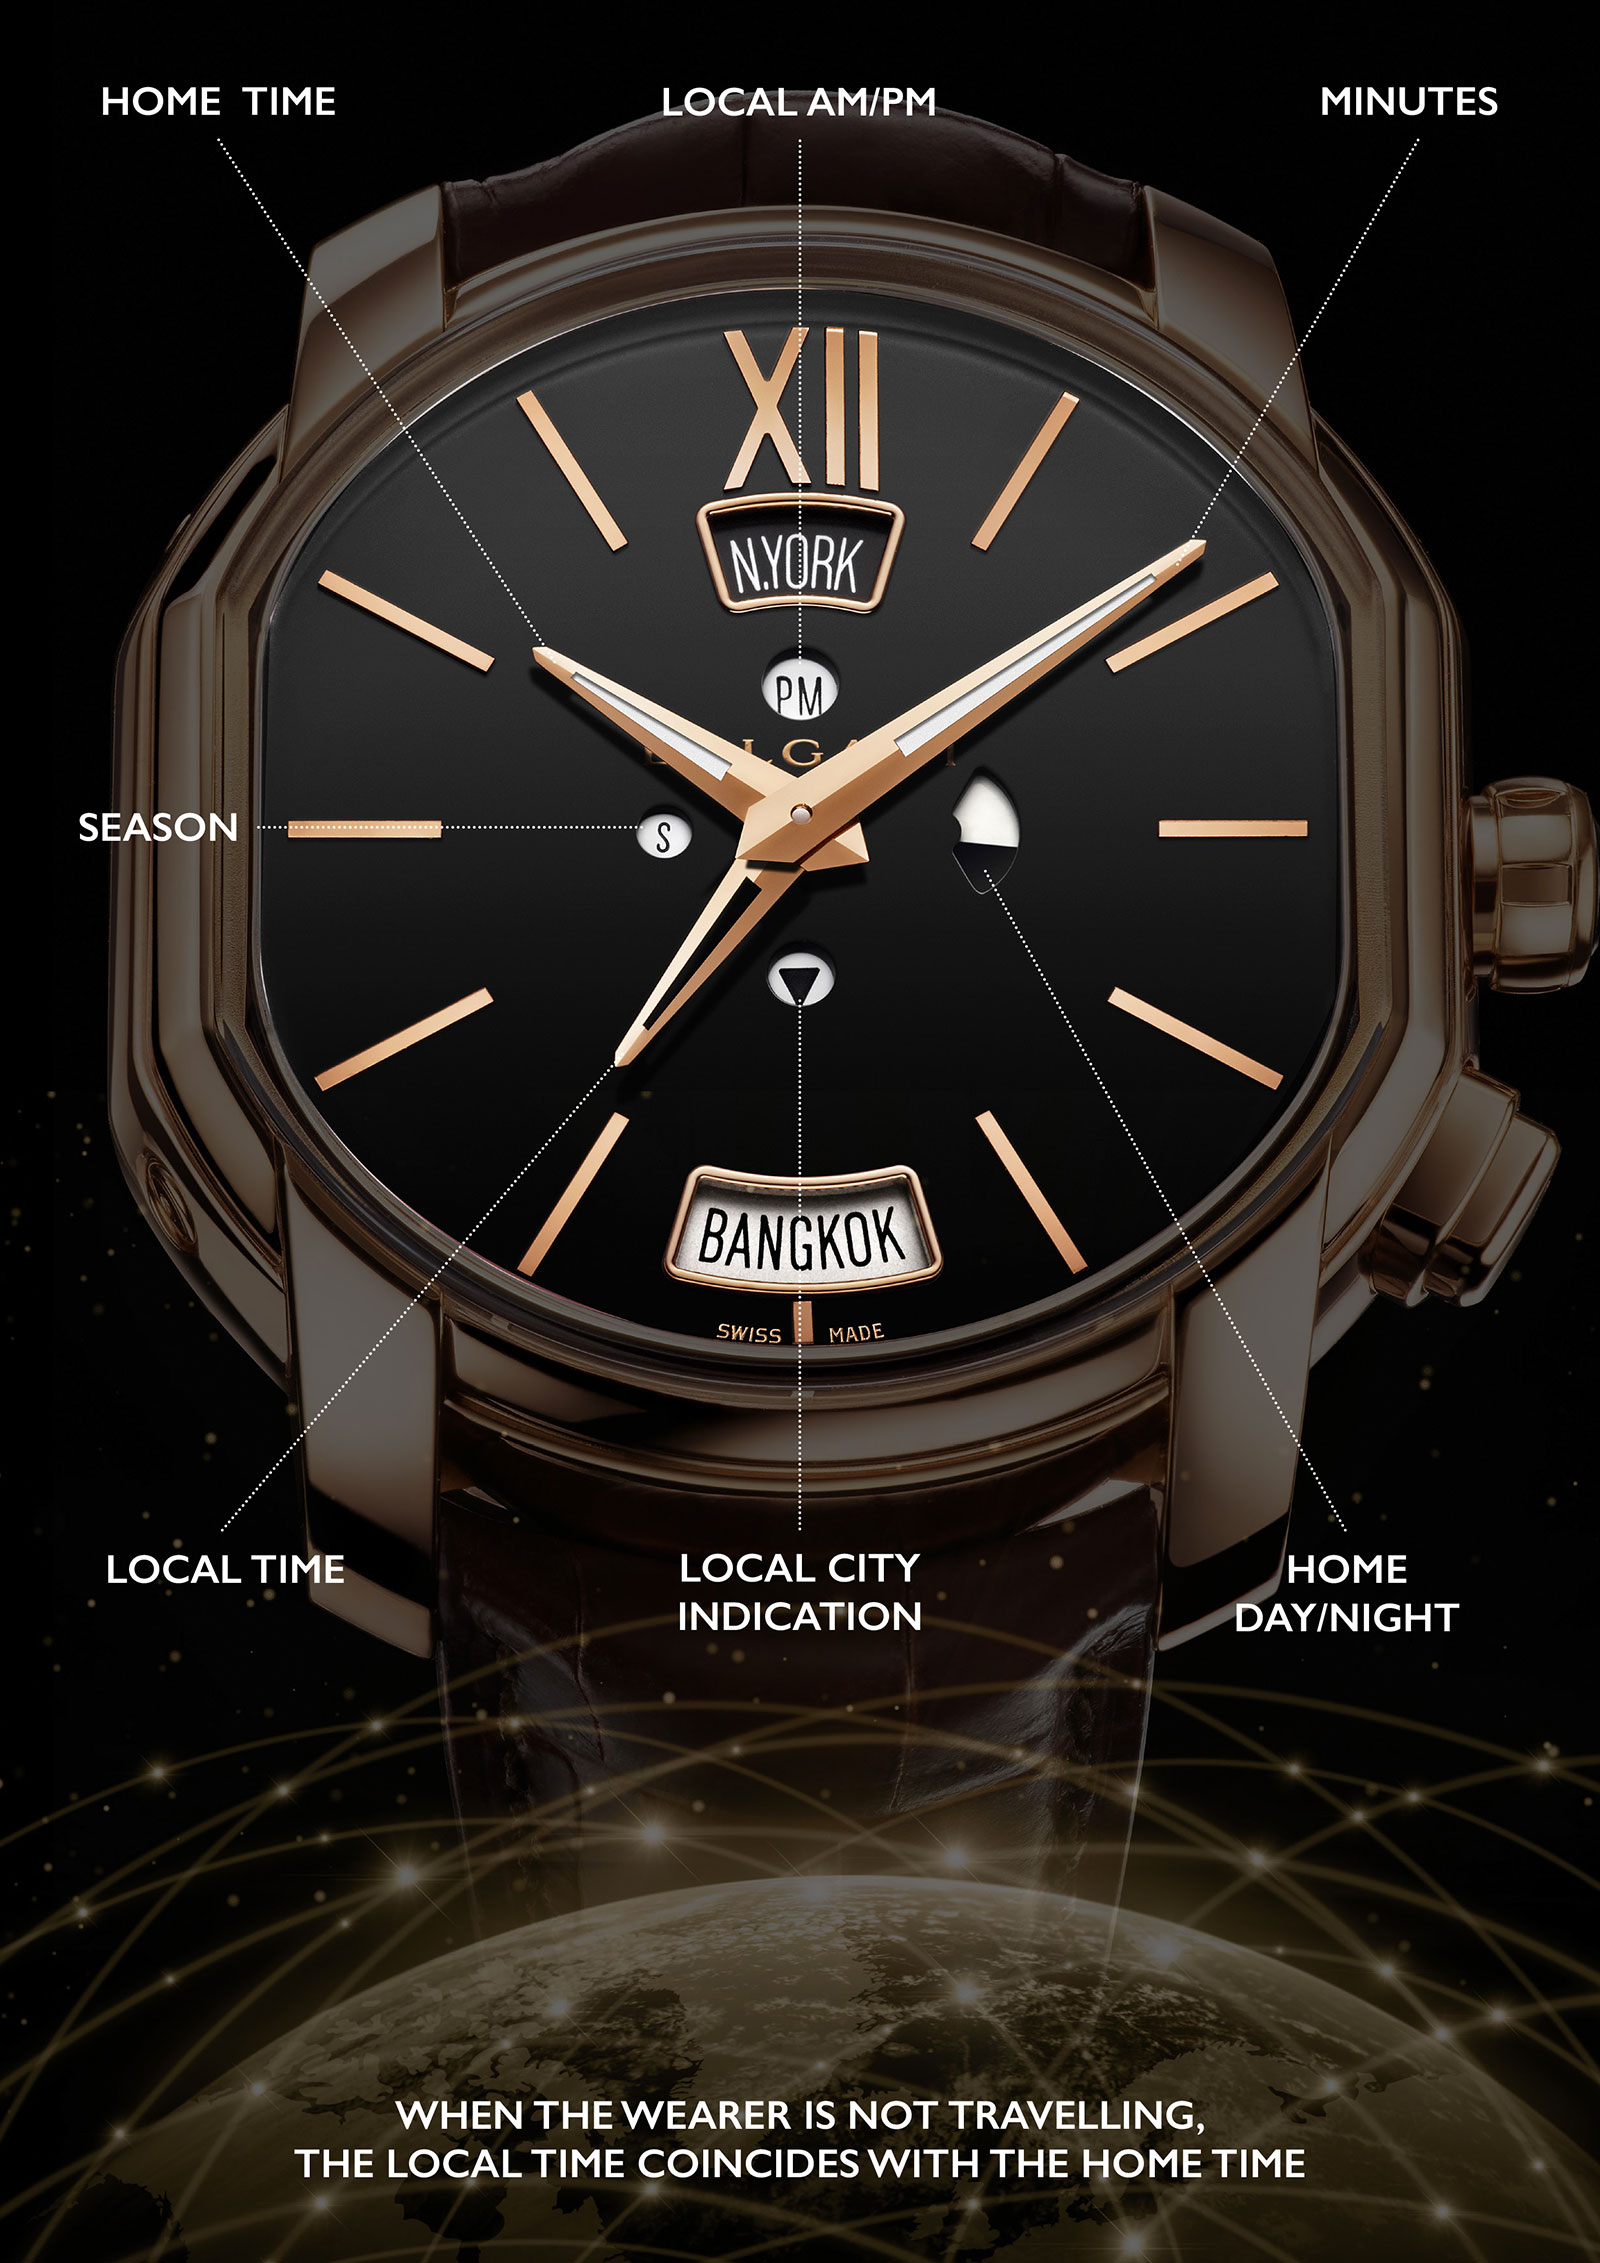 Bulgari Hora Domus time zone